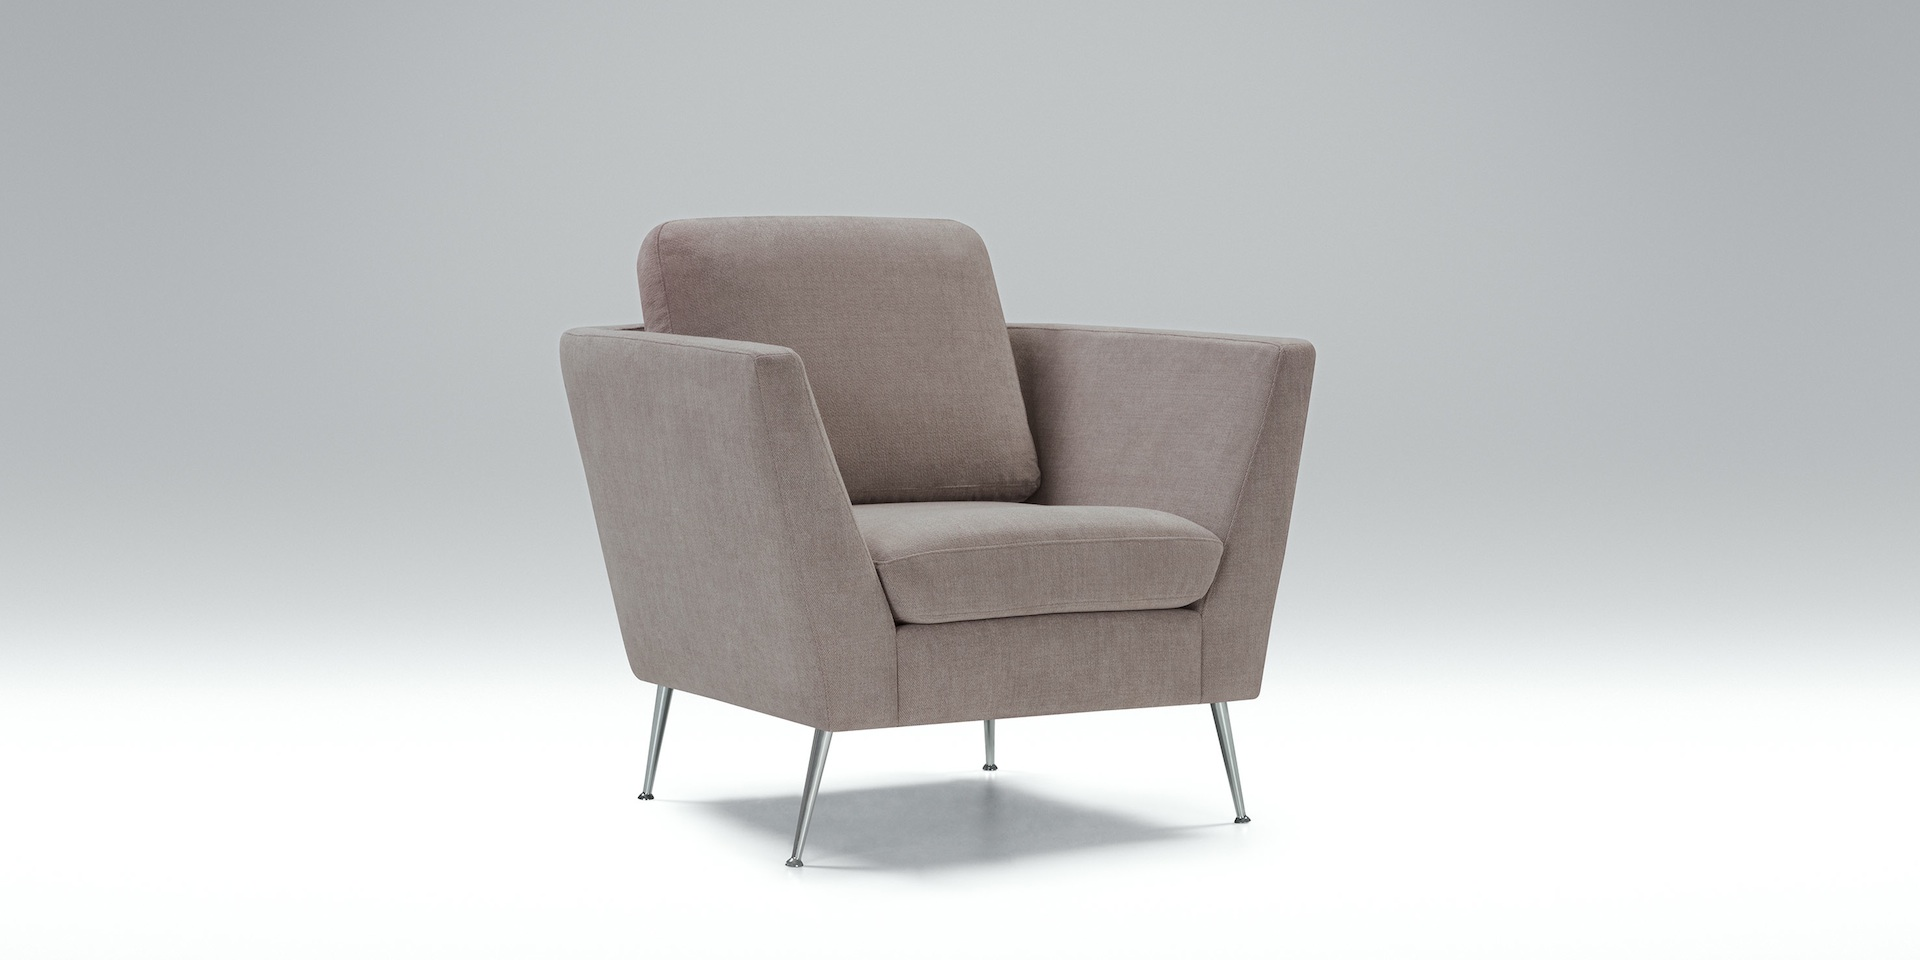 MYNTA_shadow_armchair_yeti2_grey_beige_2